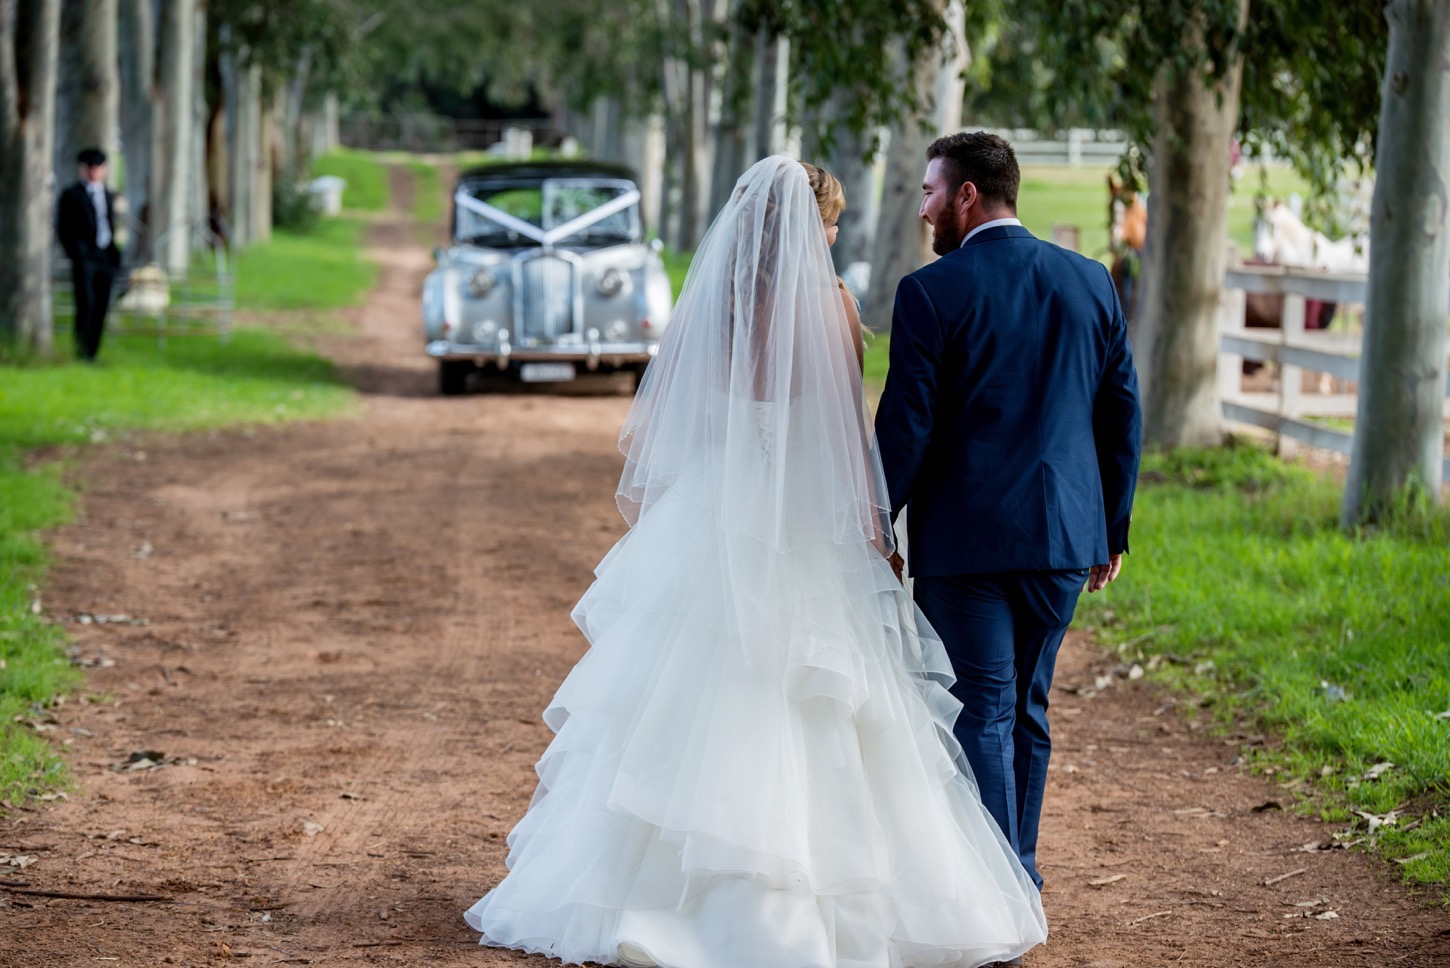 Sandie_Bertram_Photography_Very_Nice_Classics_Perth_Wedding_Cars_Anne-Marie_and_Vince.jpg